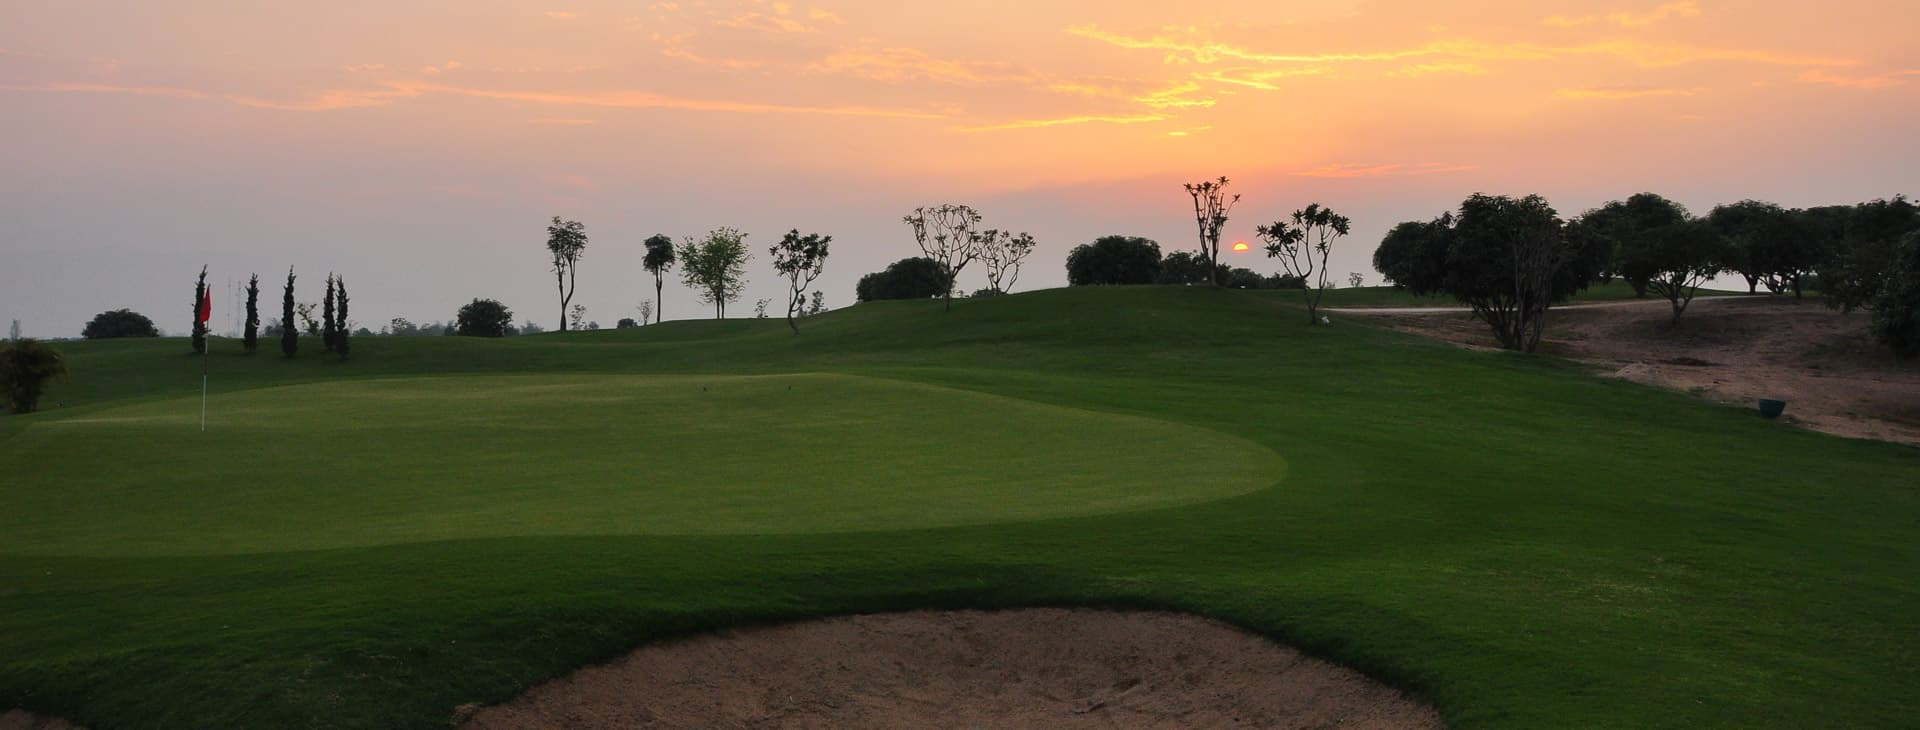 Golf-Thailand_Golf-Courses_Chiang-Mai_Inthanon-Golf-and-Natural-Resort